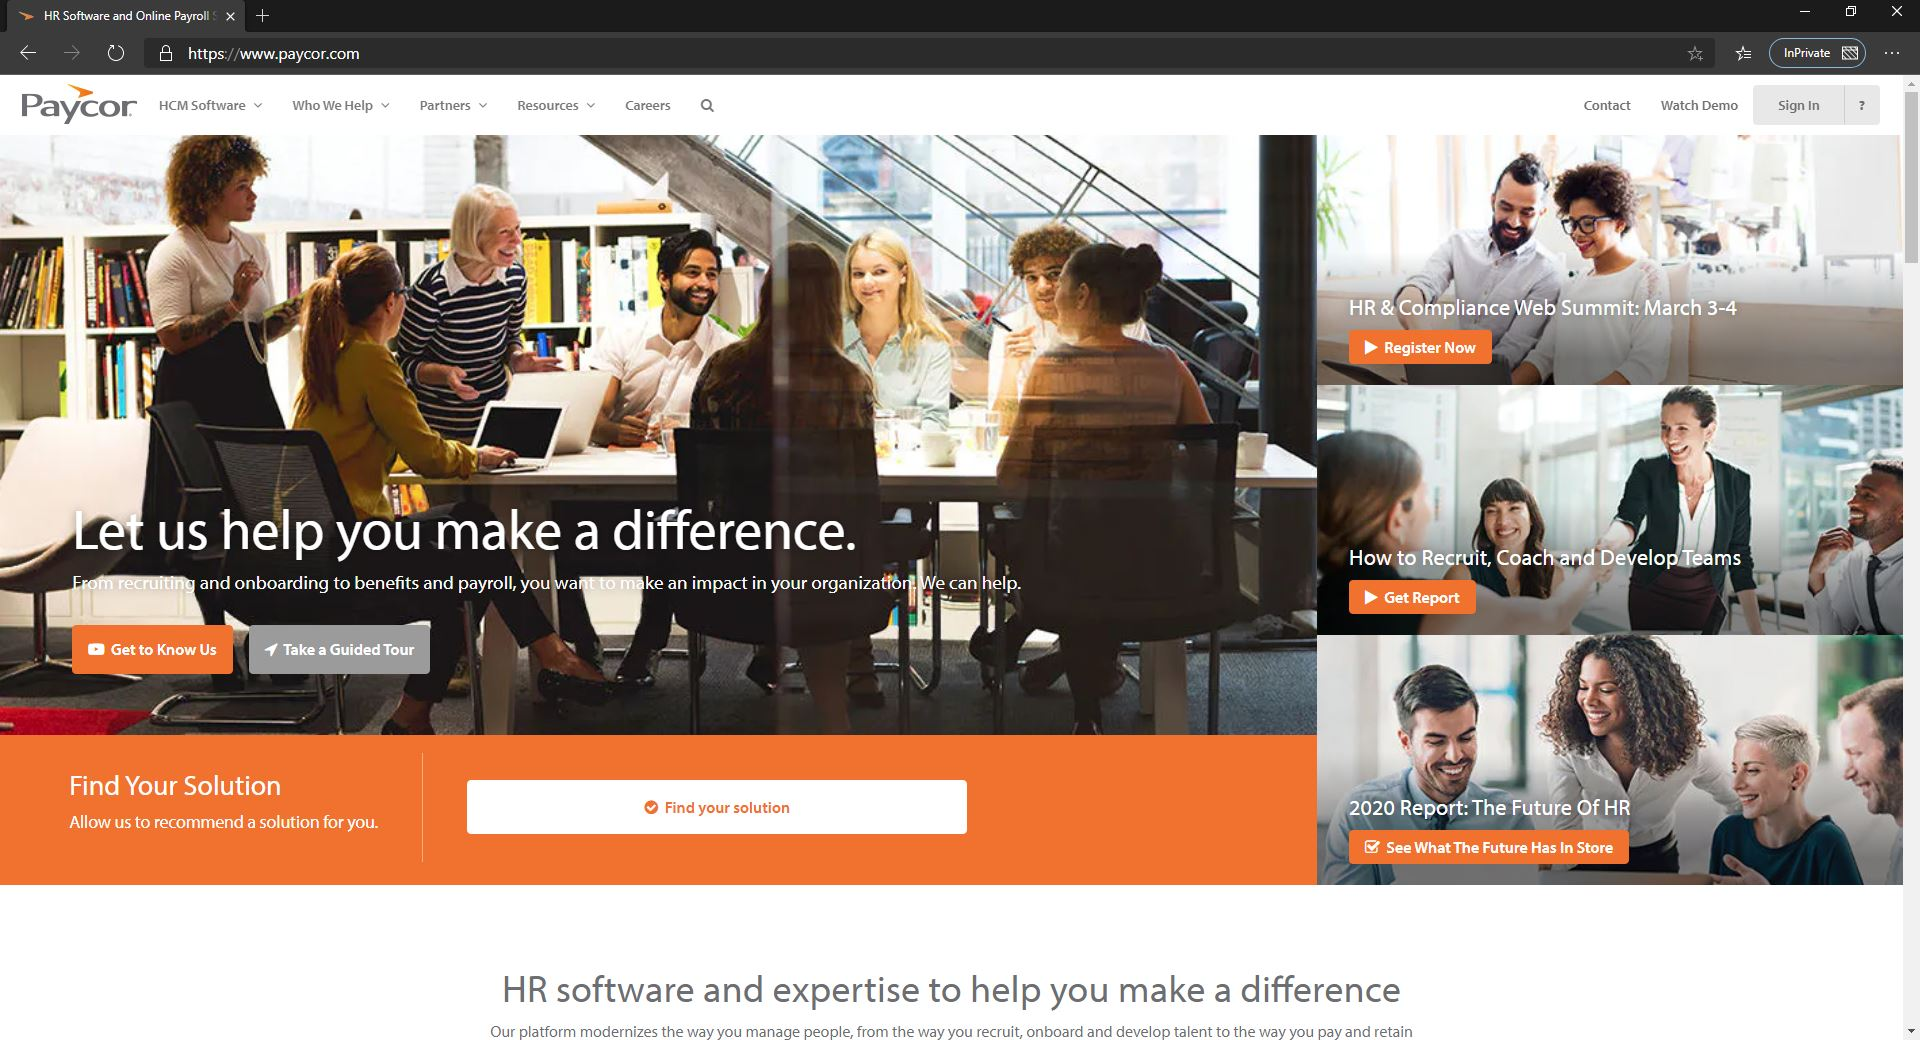 10 Best Recruiting Software For Small Businesses & Startups Companies-Paycor-Fig 1